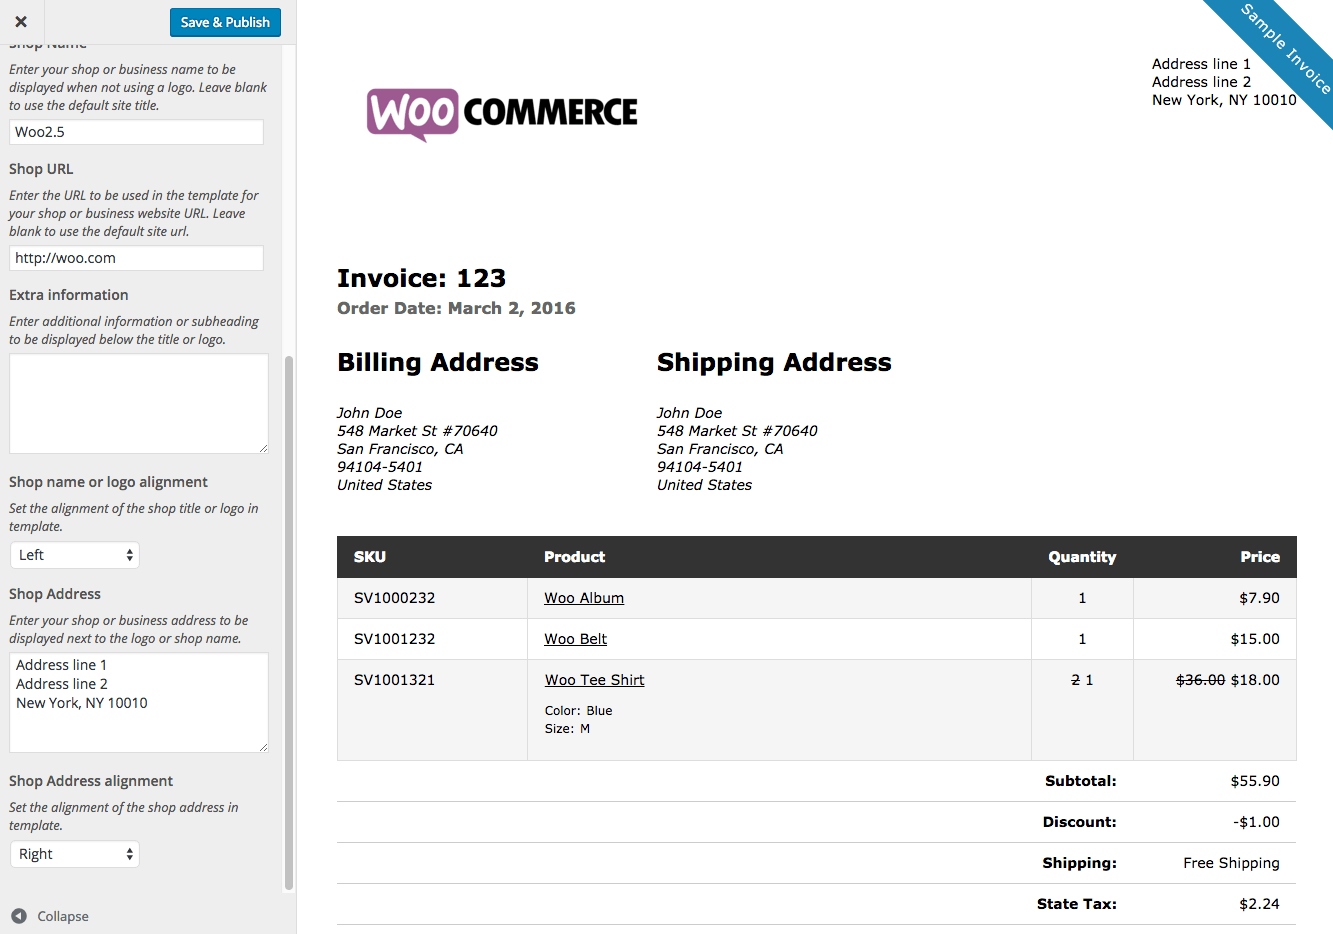 Massenargcus  Surprising Print Invoices Amp Packing Lists  Woocommerce With Licious Woocommerce Print Invoices  Packing Lists Customizer With Endearing Examples Of Rent Receipts Also Printable Taxi Receipts In Addition Epson Pos Receipt Printer And Best Receipt Printer As Well As Usps Insured Mail Receipt Additionally Receipt Template Free Printable From Woocommercecom With Massenargcus  Licious Print Invoices Amp Packing Lists  Woocommerce With Endearing Woocommerce Print Invoices  Packing Lists Customizer And Surprising Examples Of Rent Receipts Also Printable Taxi Receipts In Addition Epson Pos Receipt Printer From Woocommercecom